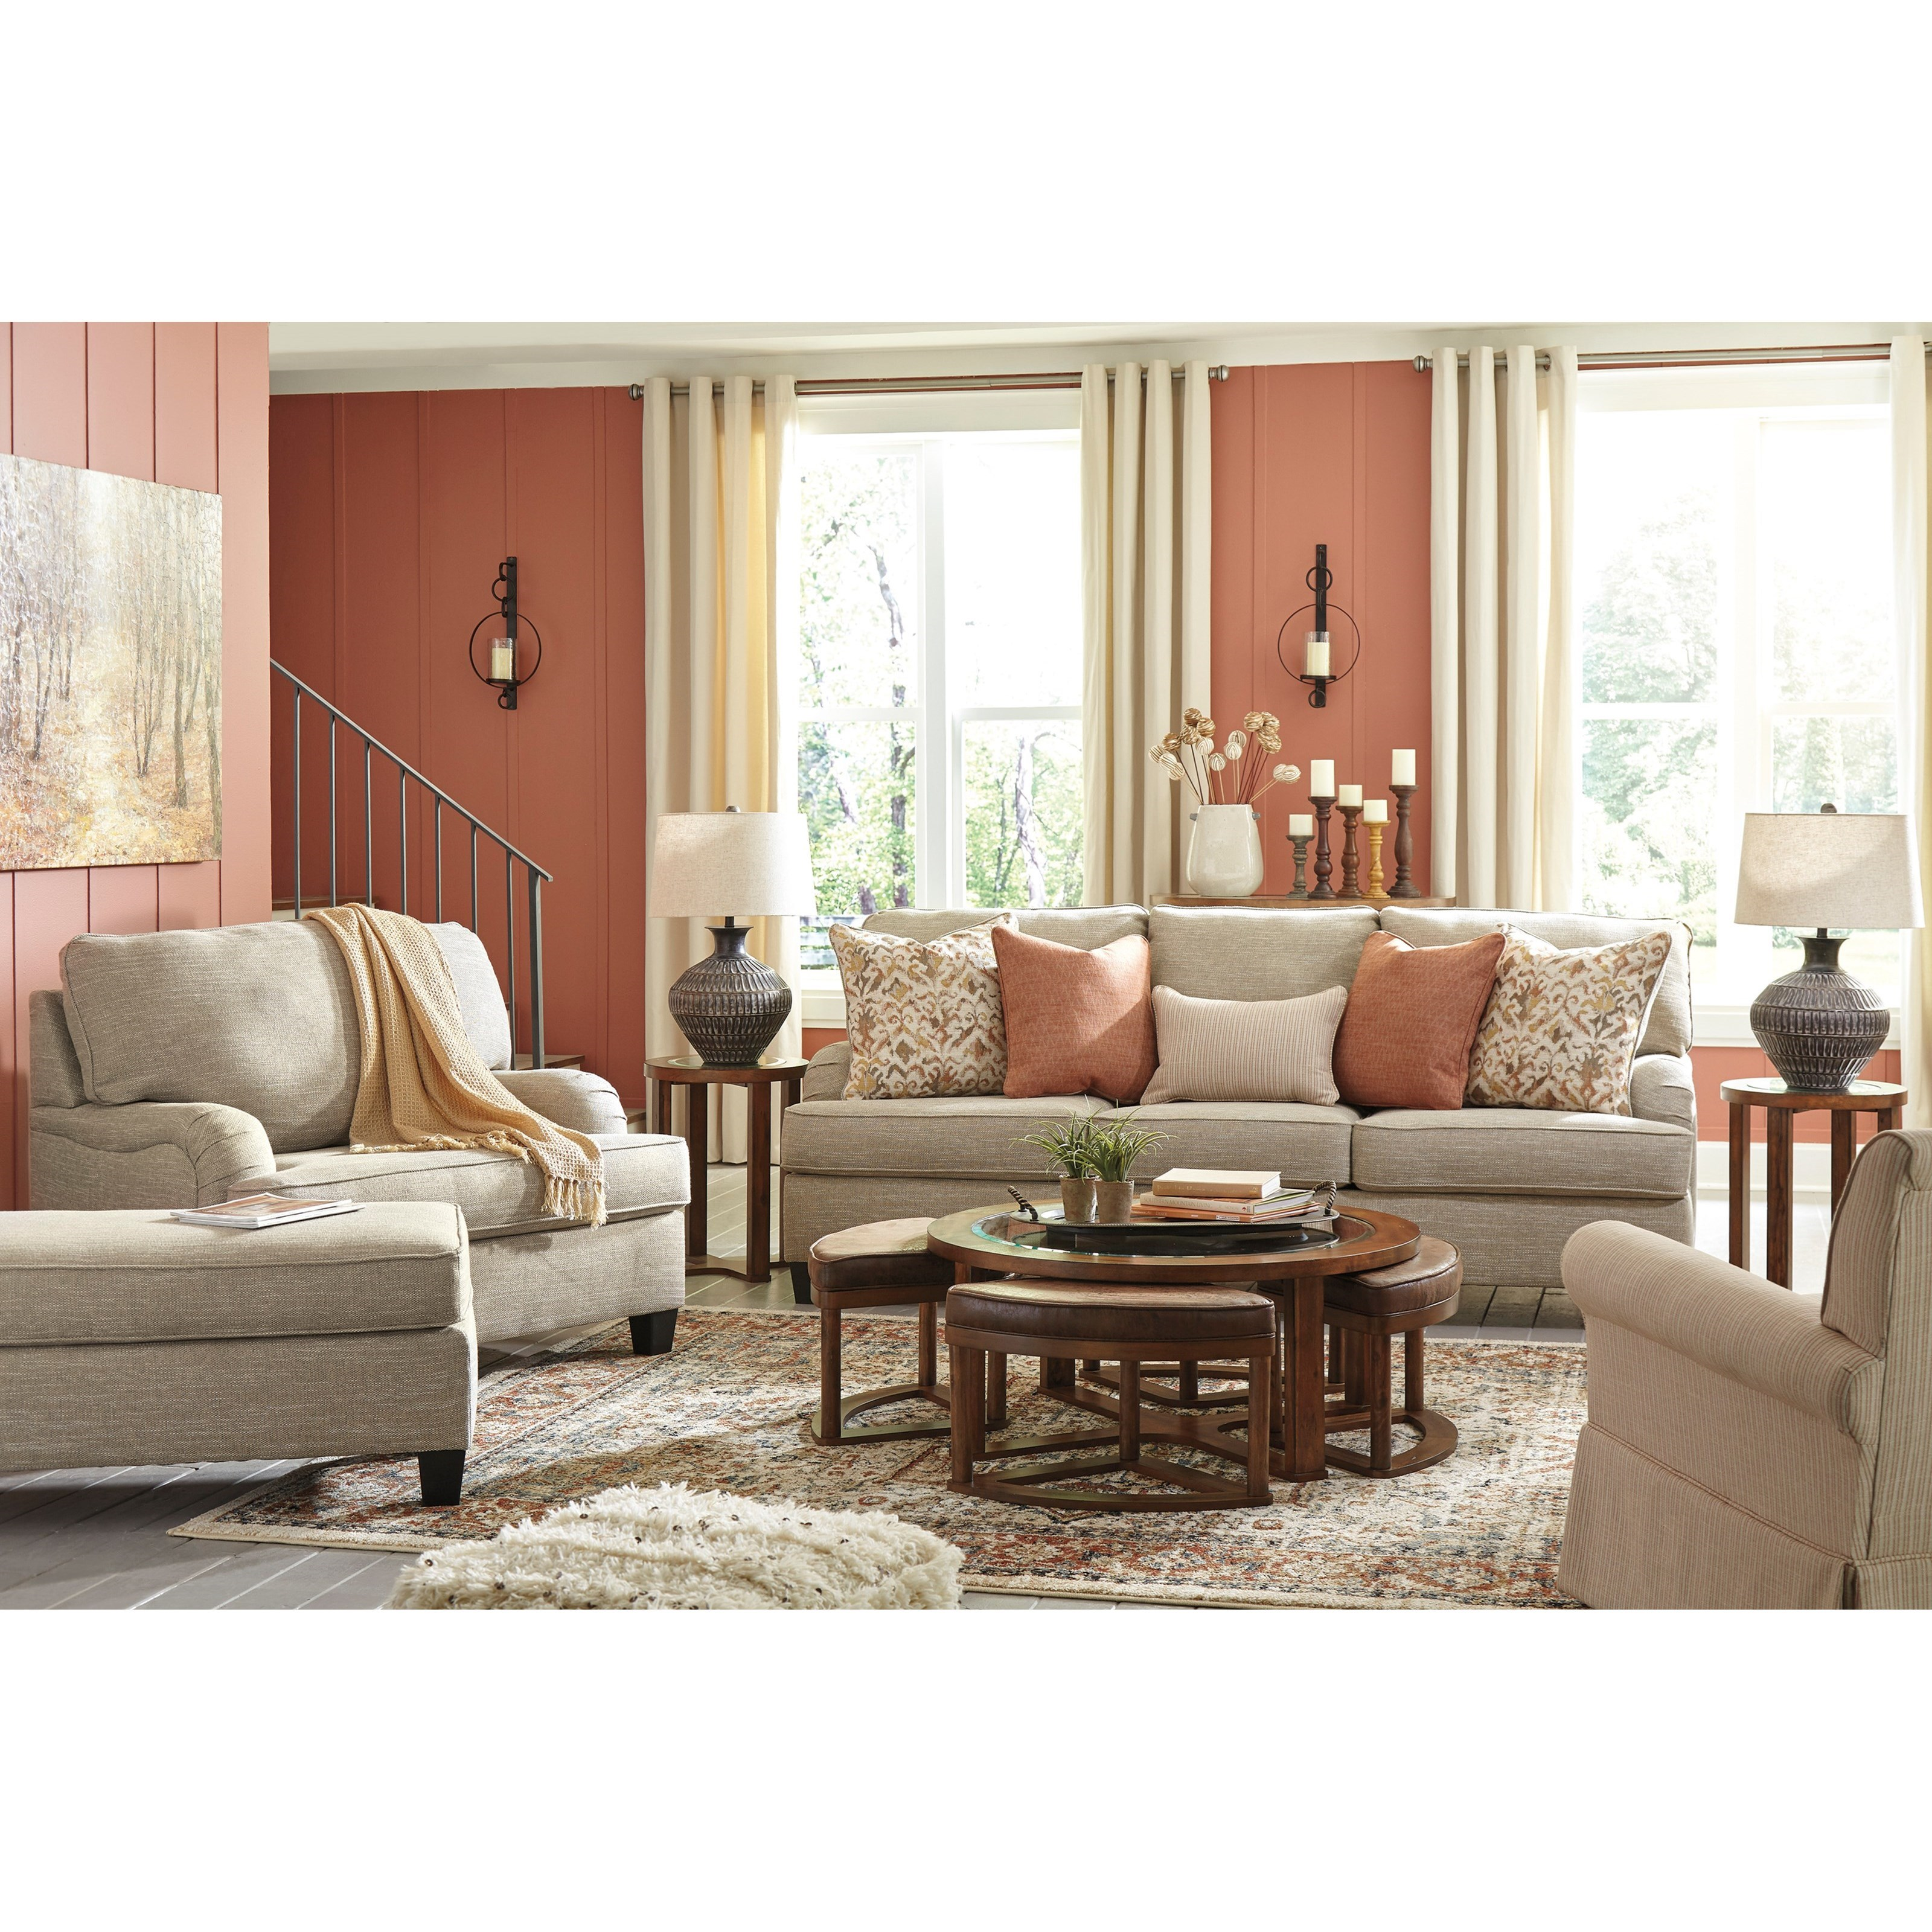 Almanza Living Room Group by Signature Design by Ashley at Suburban Furniture